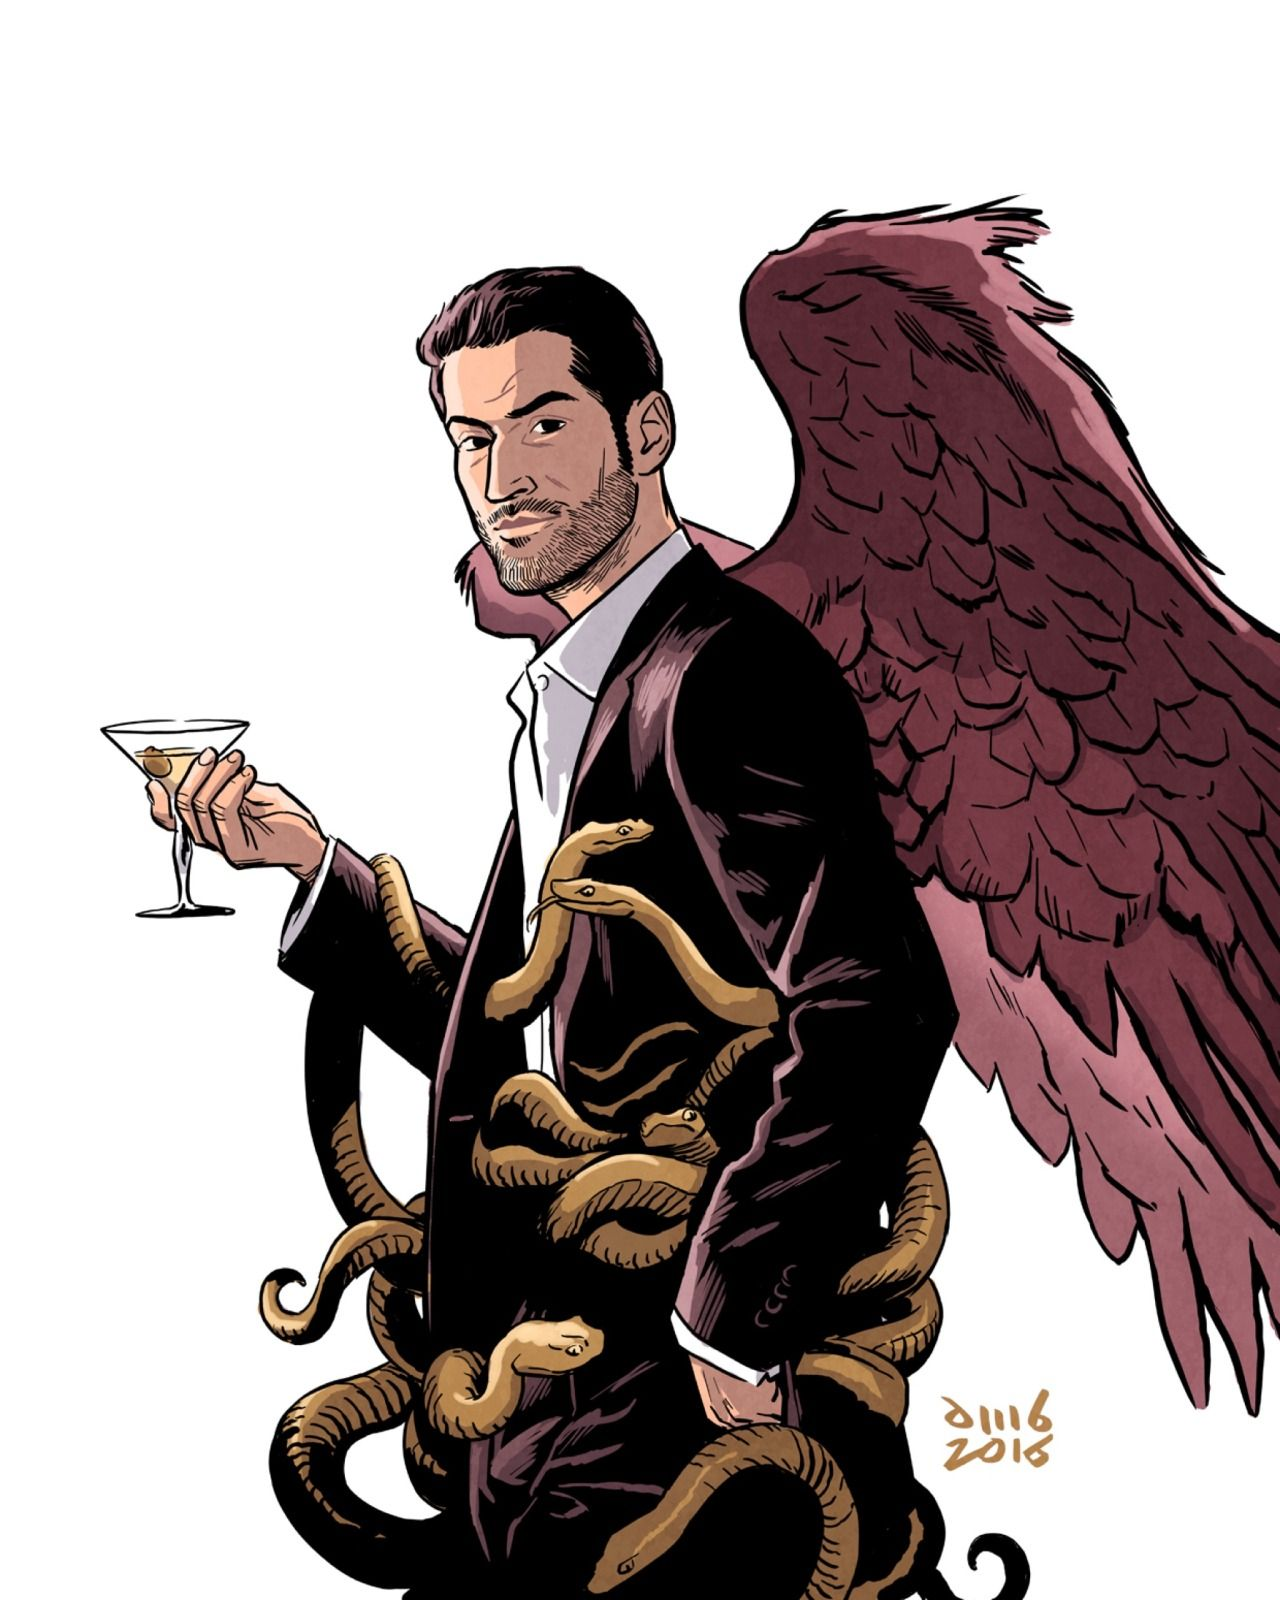 Lucifer Morningstar In Lucifer 2 2016: (my Illustration Is Based On Lucifer Comicbook Cover By